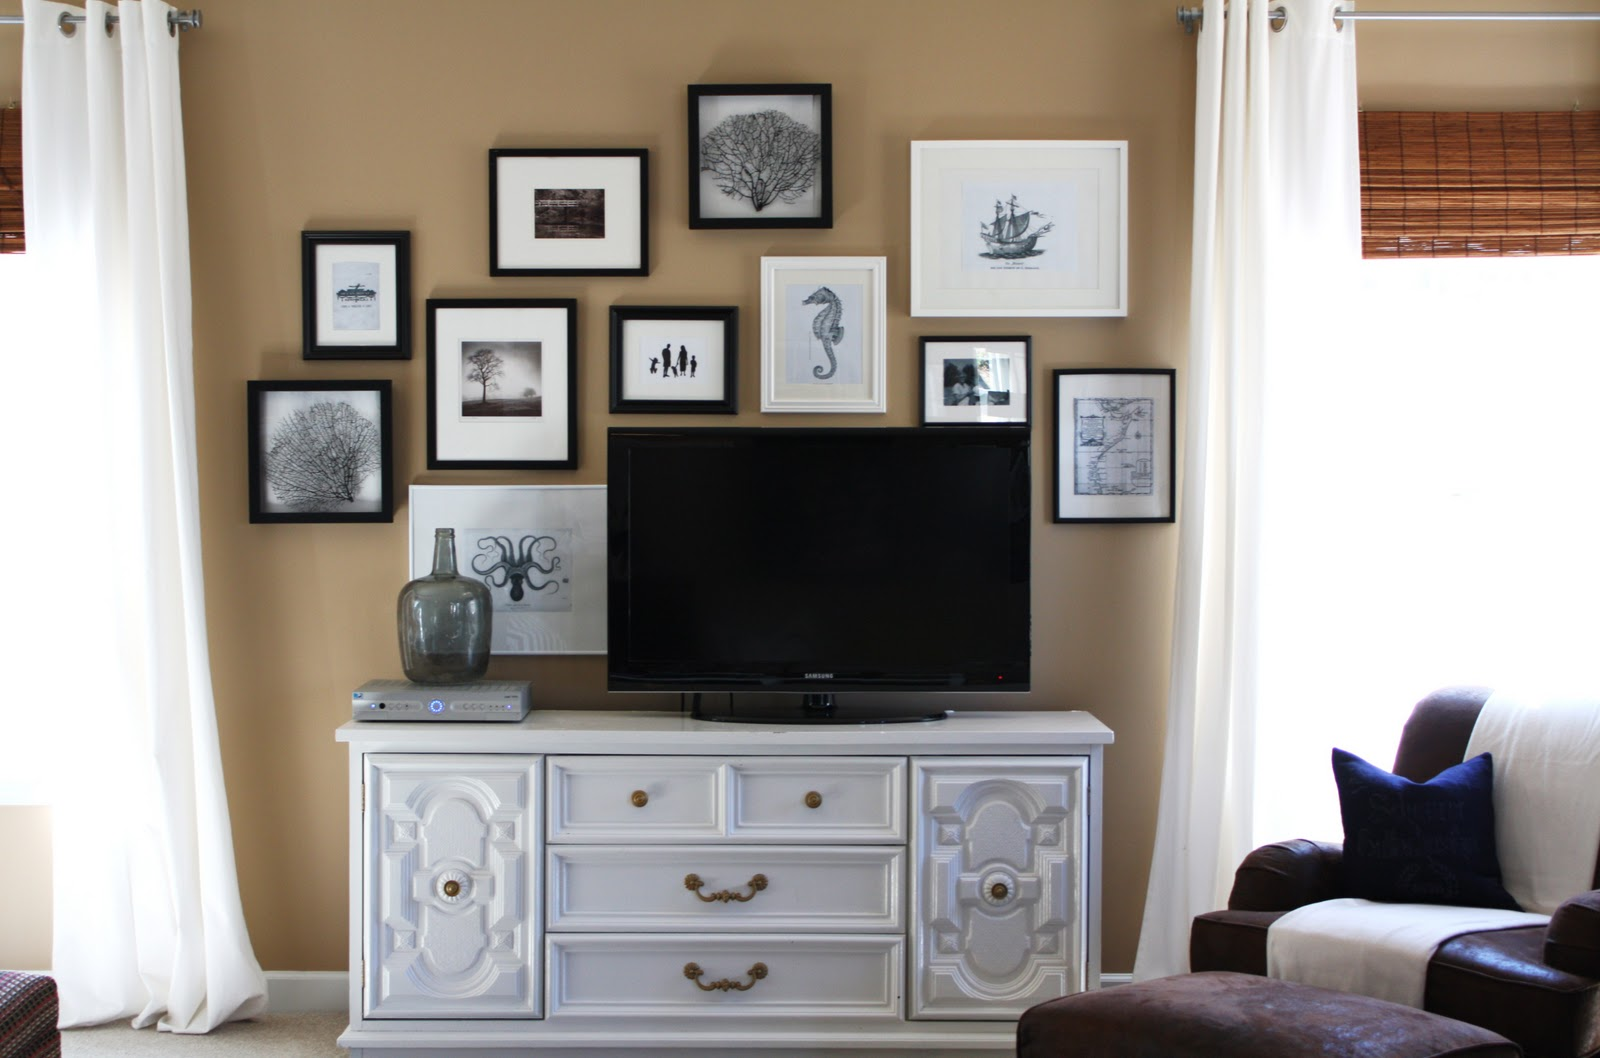 Wall Decoration Above Tv : Lisa mende design how to decorate around a flat screen tv